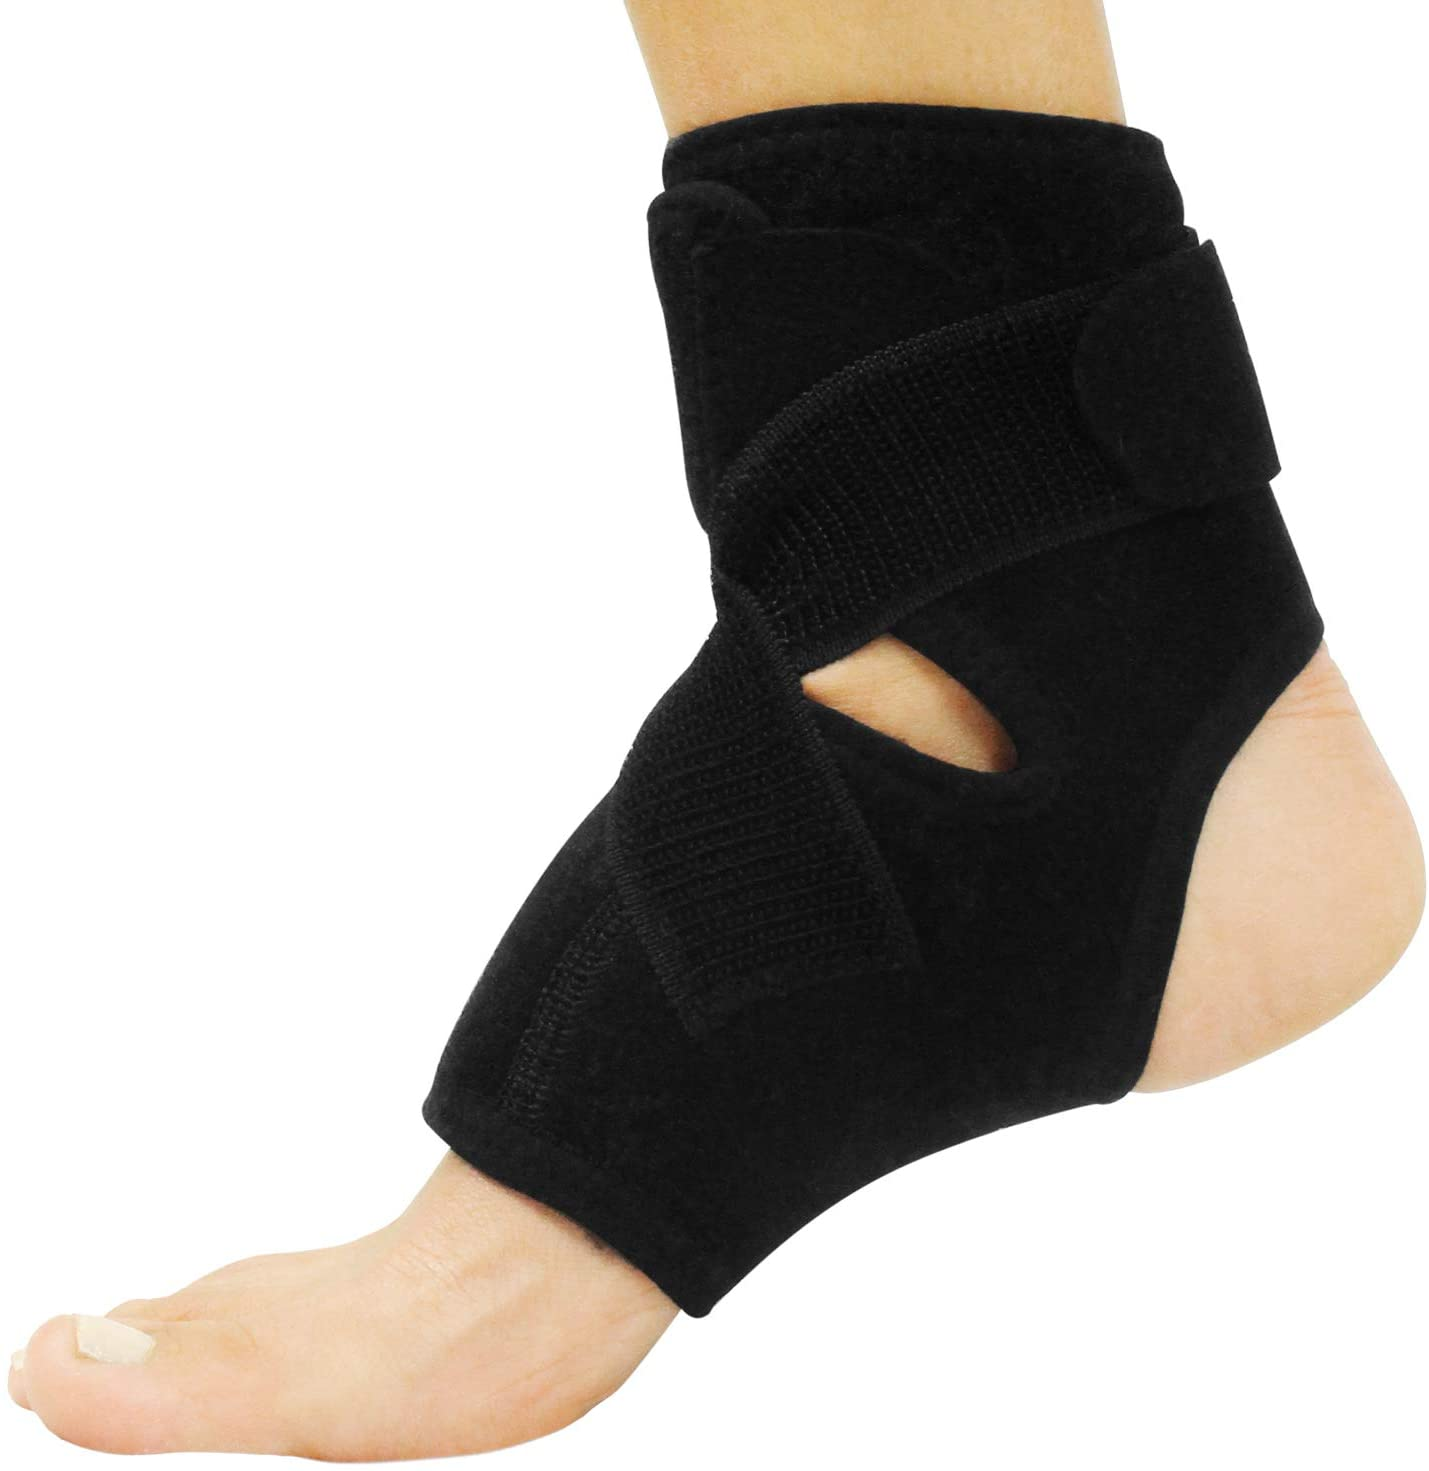 Vive Ankle Sleeve Brace - Right and Left Foot Support Wrap for Men and Women - Adjustable Sprained Feet- Lightweight, Breathable Guard - Stabilizer for Running, Rolled Sprains, Swollen Tendonitis